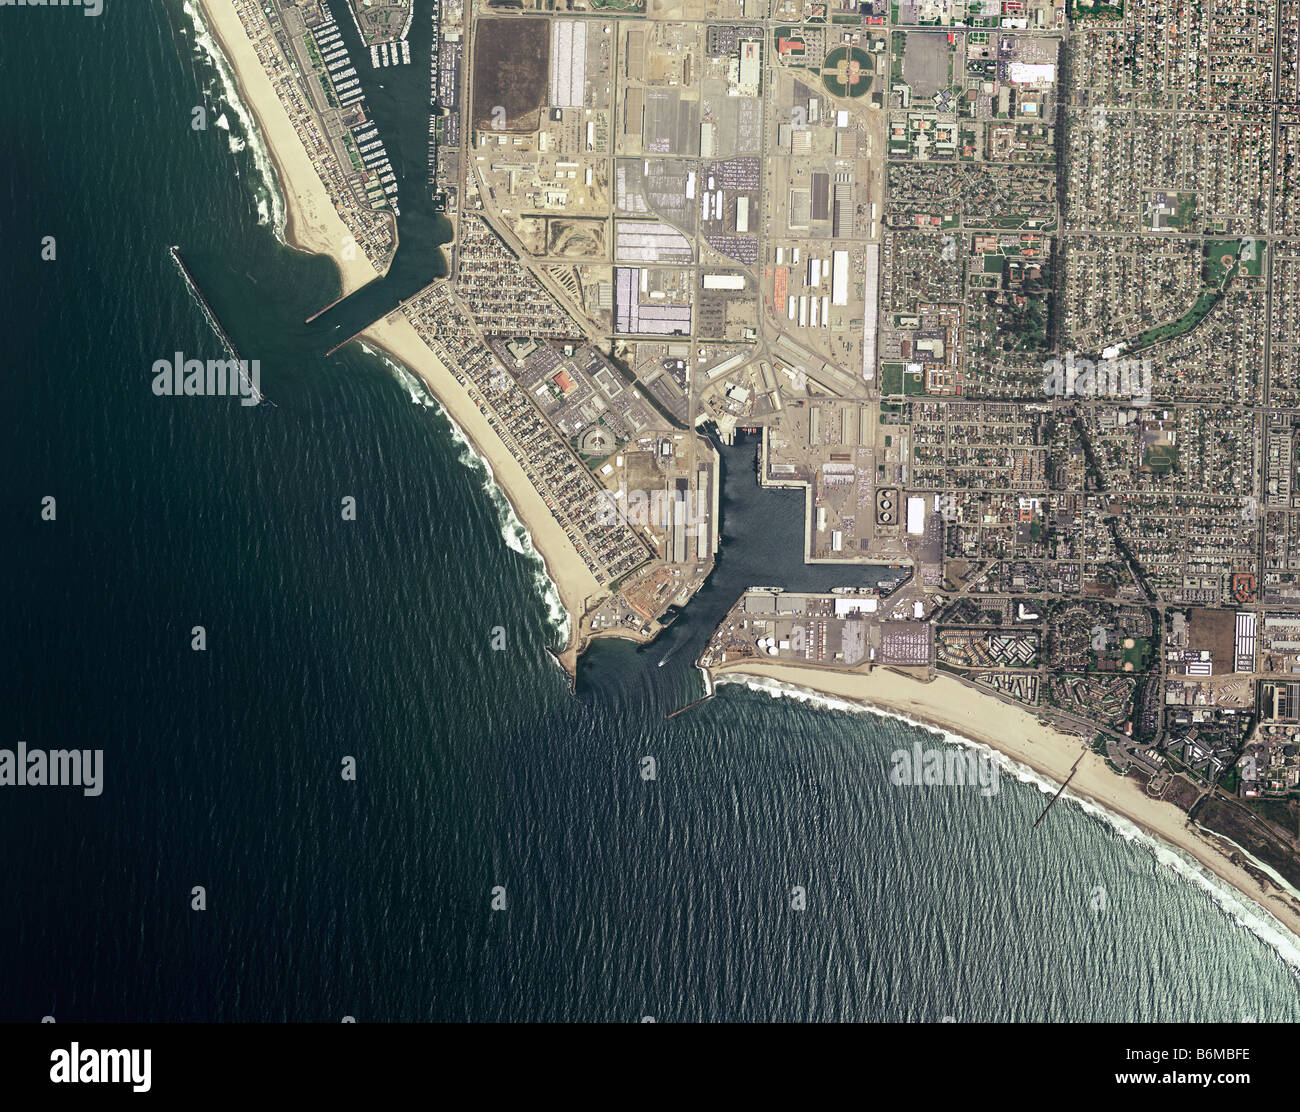 Aerial Map of Port Hueneme and Channel Islands Harbor Oxnard, Ventura County, California - Stock Image